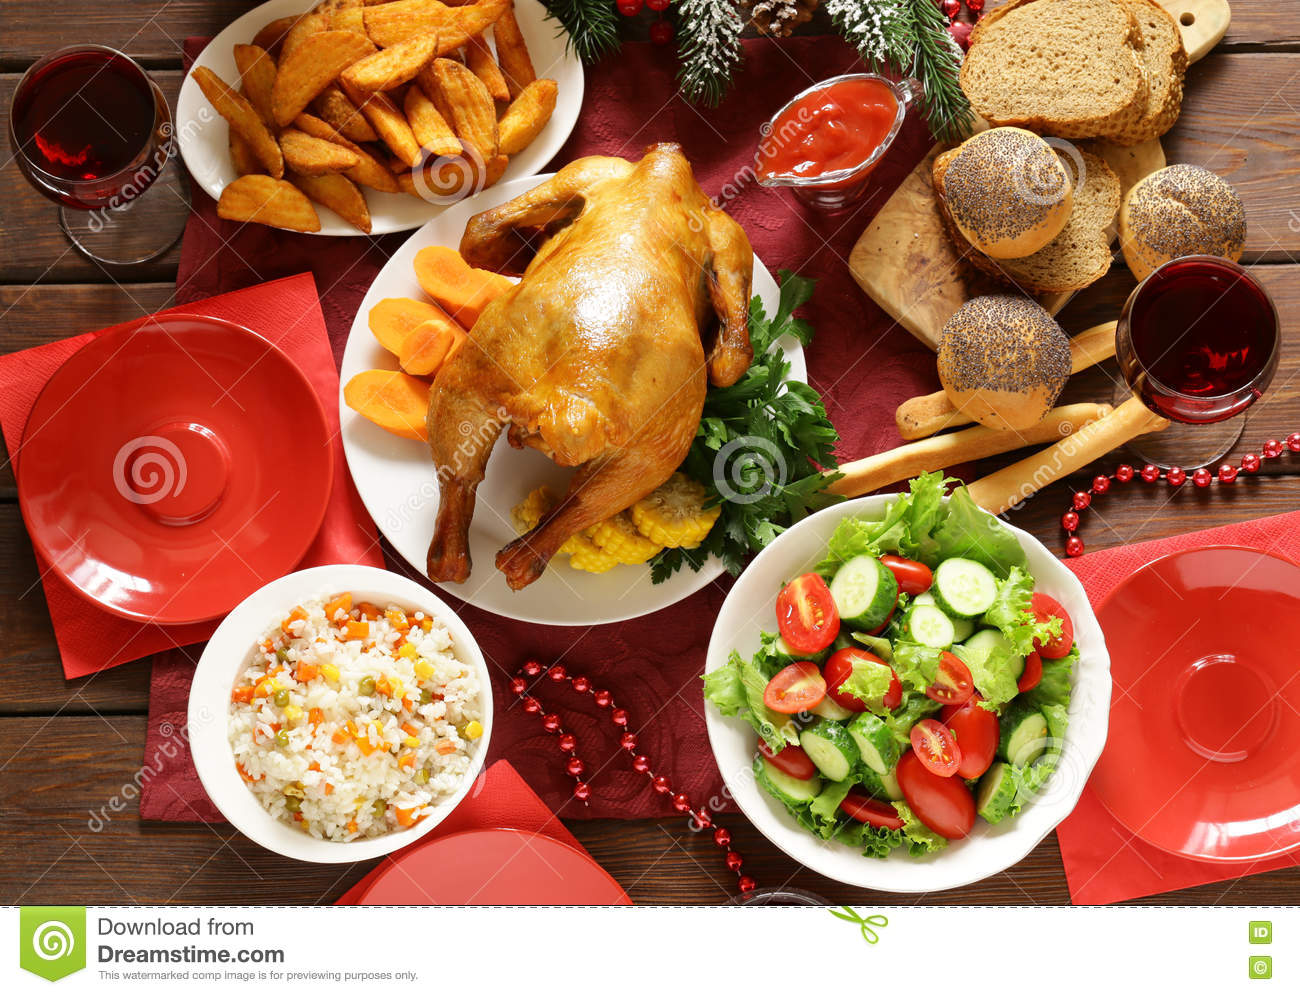 Family dinner table with food - Traditional Food For Christmas Dinner Festive Table Setting Royalty Free Stock Images